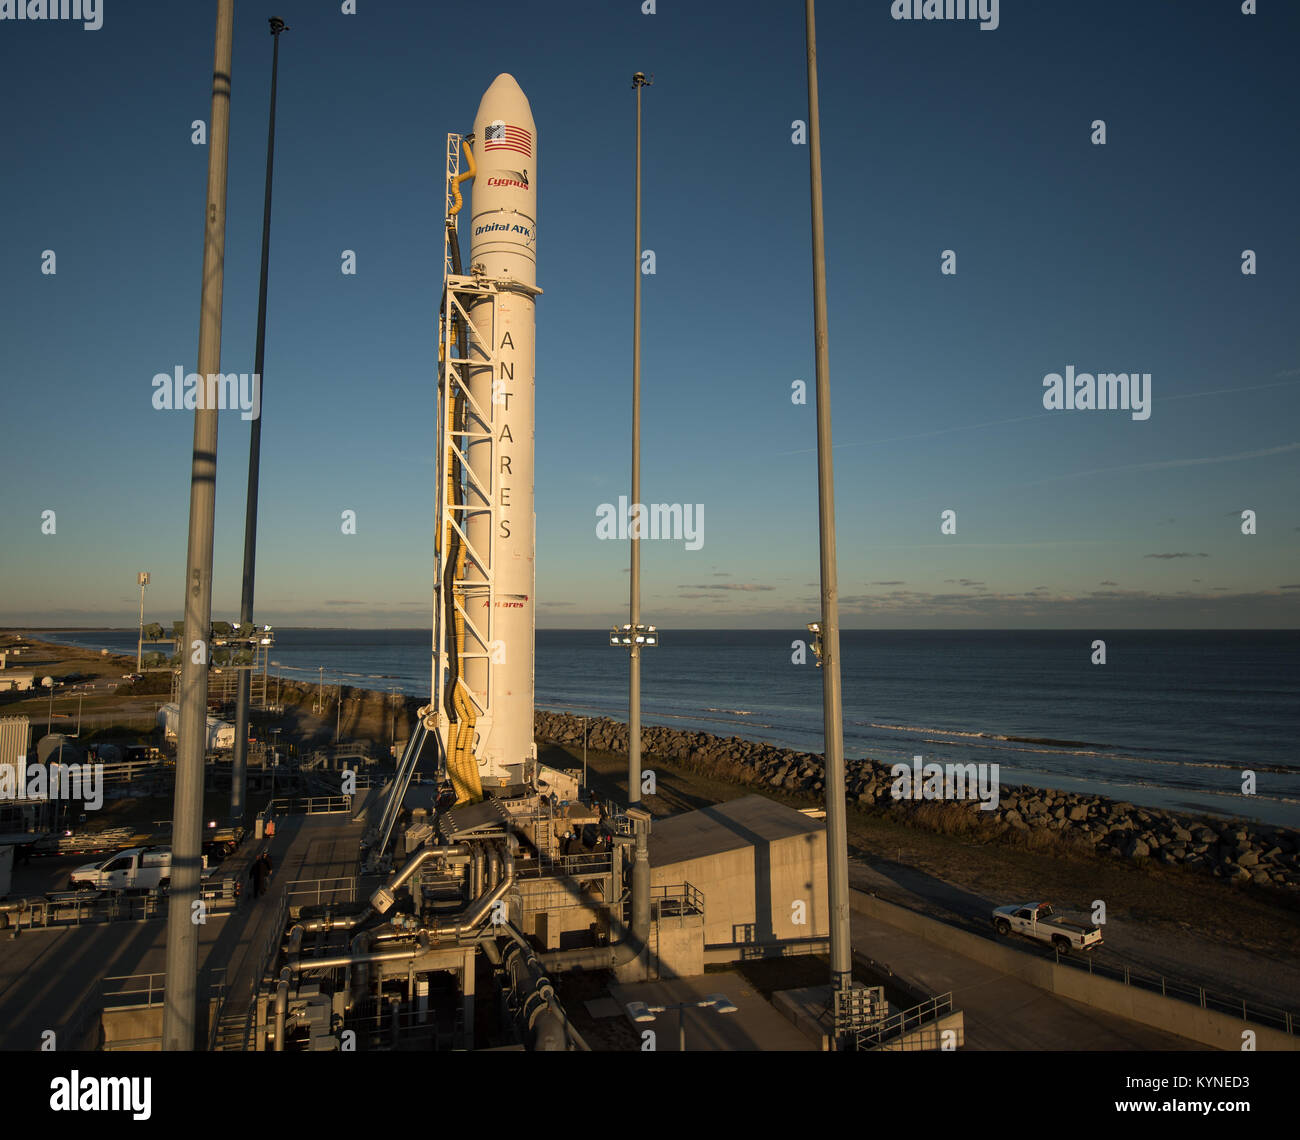 The Orbital ATK Antares rocket, with the Cygnus spacecraft onboard, is seen on launch Pad-0A, Friday, Nov. 10, 2017 Stock Photo